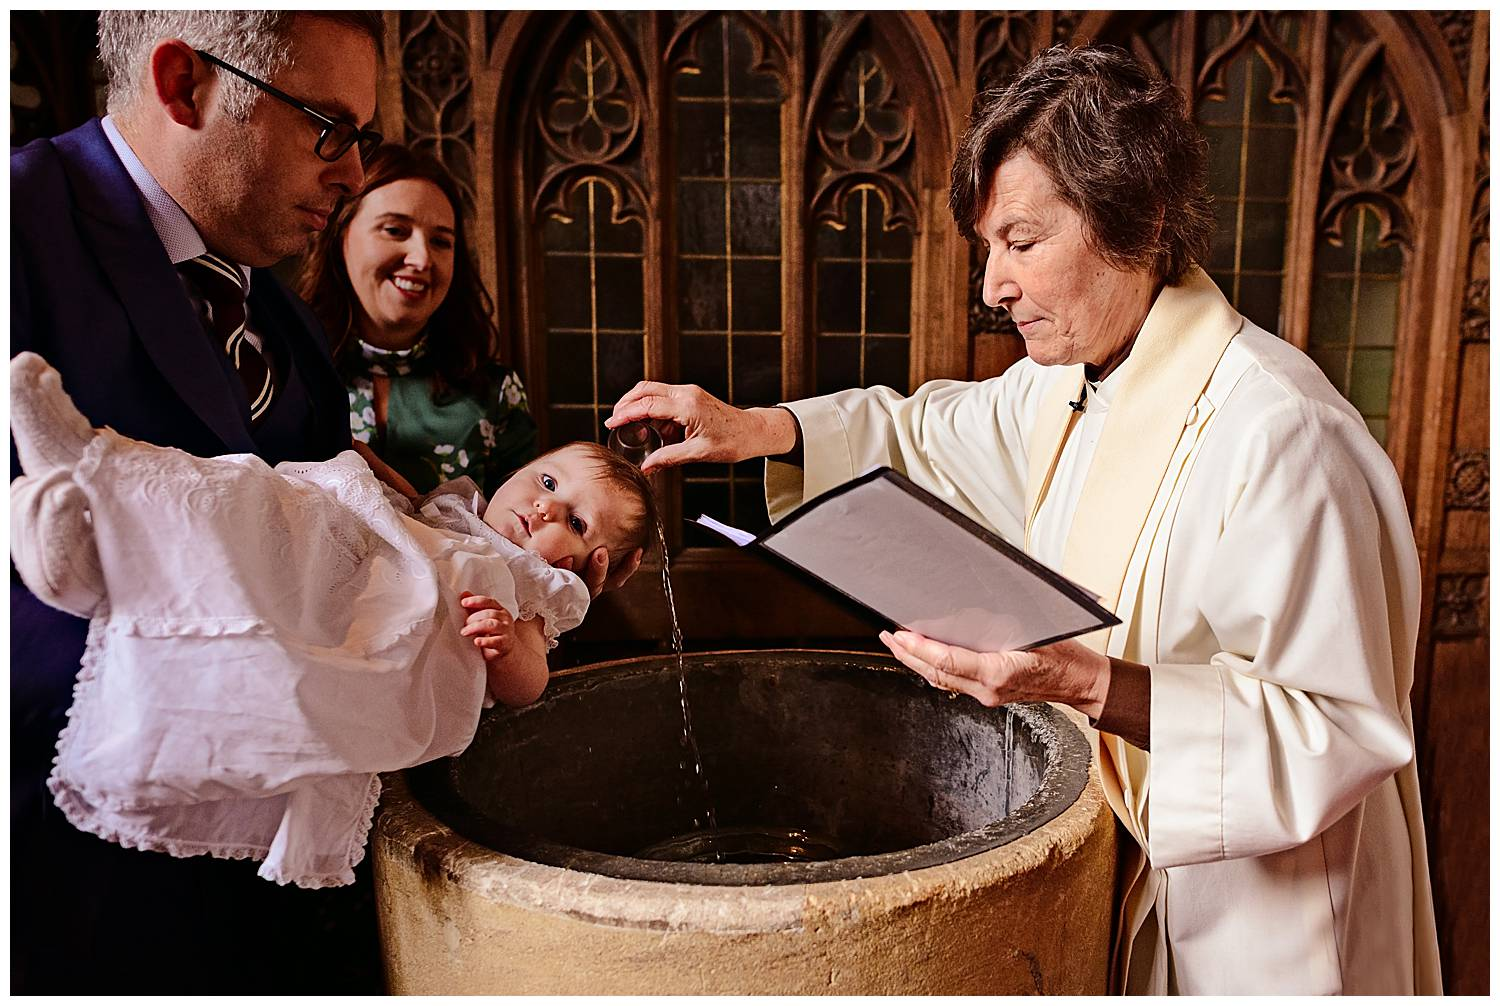 Baby being christening and looking directly into the camera as vicar pours water over it's head